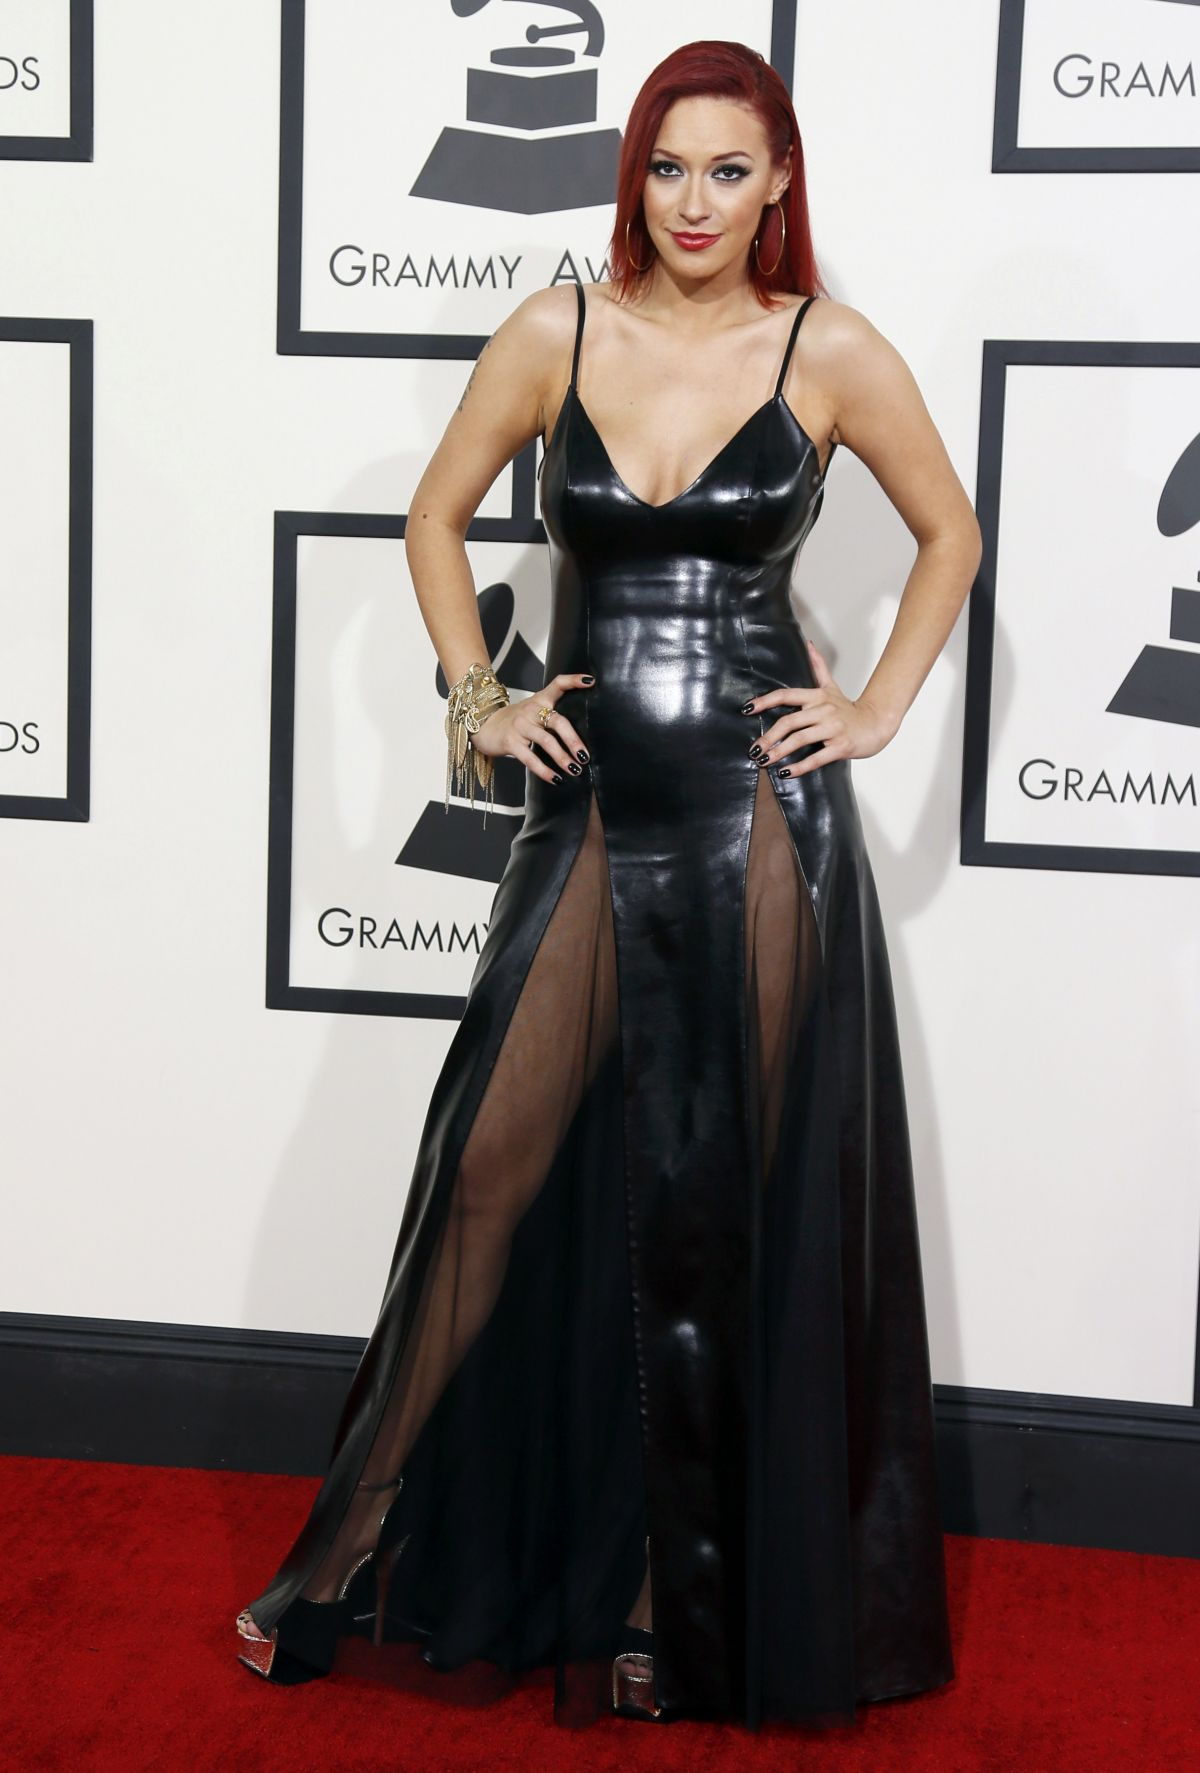 kaya jones grammy 2014